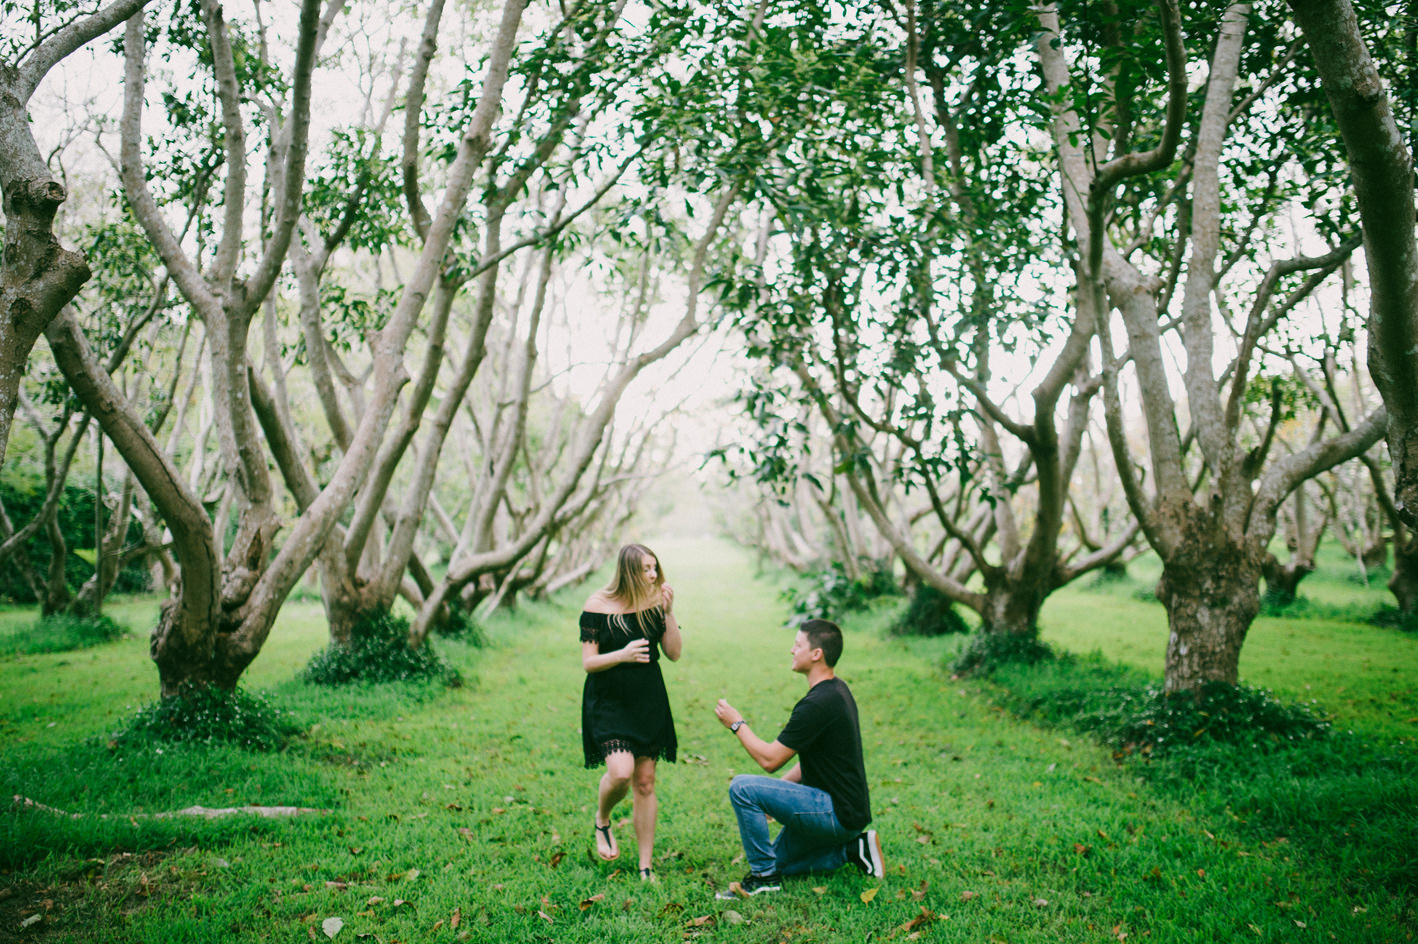 012-proposal-dan-ash_sophie-baker-photography